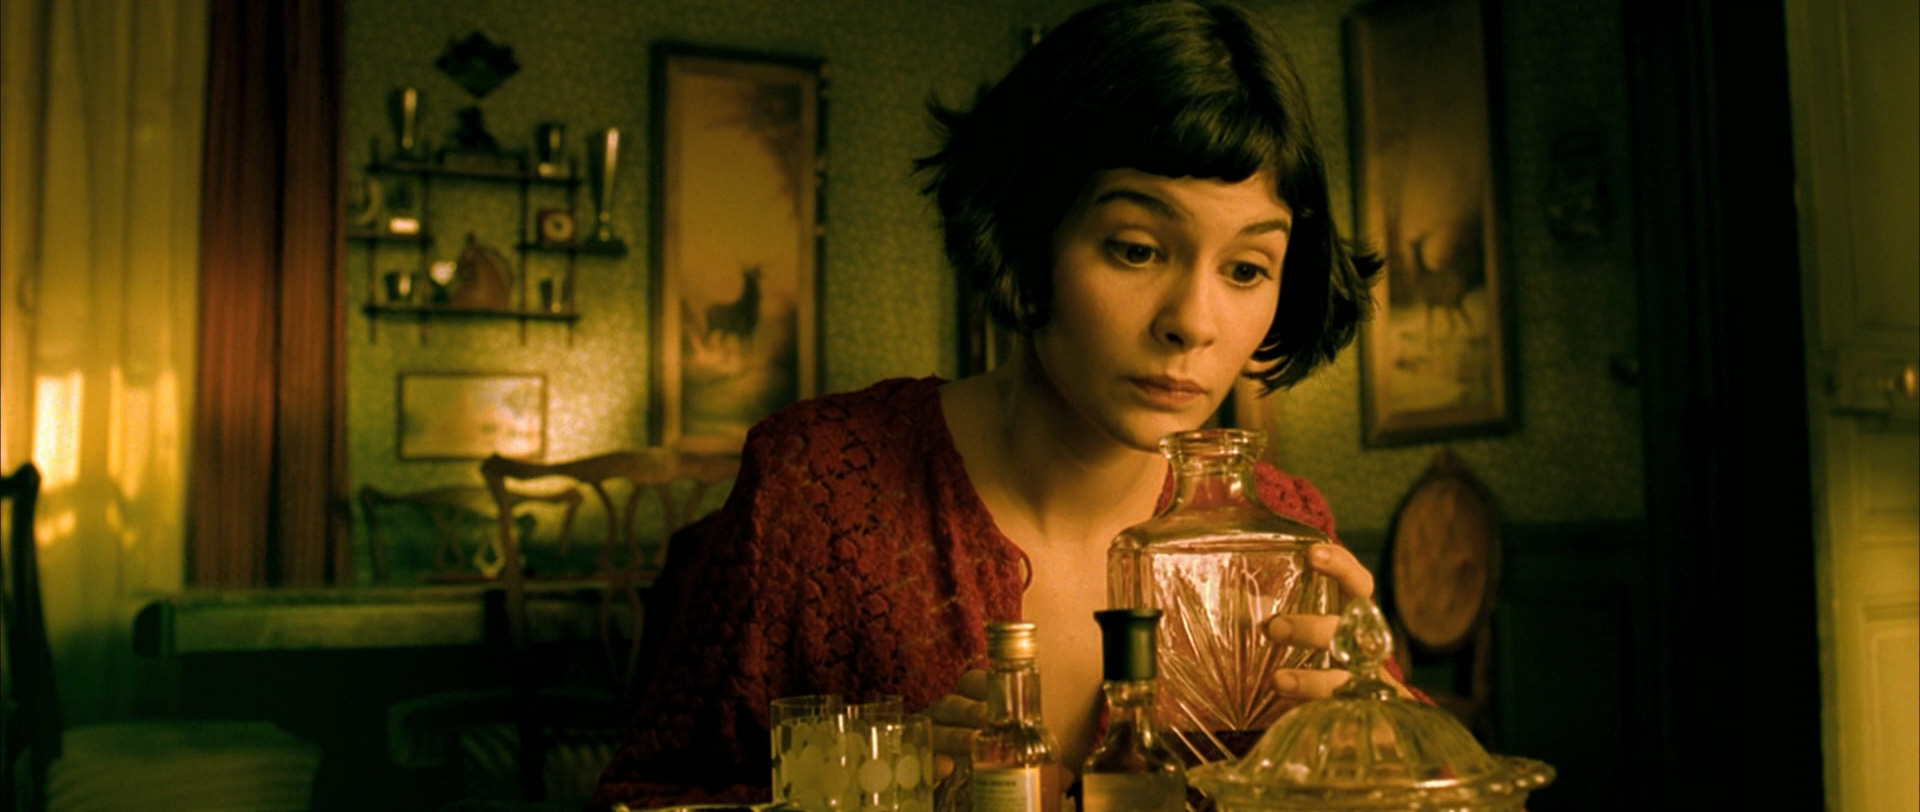 AMELIE (2001 / 35mm Print) - Sat Feb 16th 3pm / Prince Charles Cinema, London UKBursting with imagination and having seen her share of tragedy and fantasy, Amelie is not like the other girls. When she grows up she becomes a waitress in a Montmartre bar run by a former dancer. Amelie enjoys simple pleasures until she discovers that her goal in life is to help others. To that end, she invents all sorts of tricks that allow her to intervene incognito into other people's lives, including an imbibing concierge and her hypochondriac neighbor. But Amelie's most difficult case turns out to be Nino Quicampoix, a lonely sex shop employee who collects photos abandoned at coin-operated photo booths.More info HERE